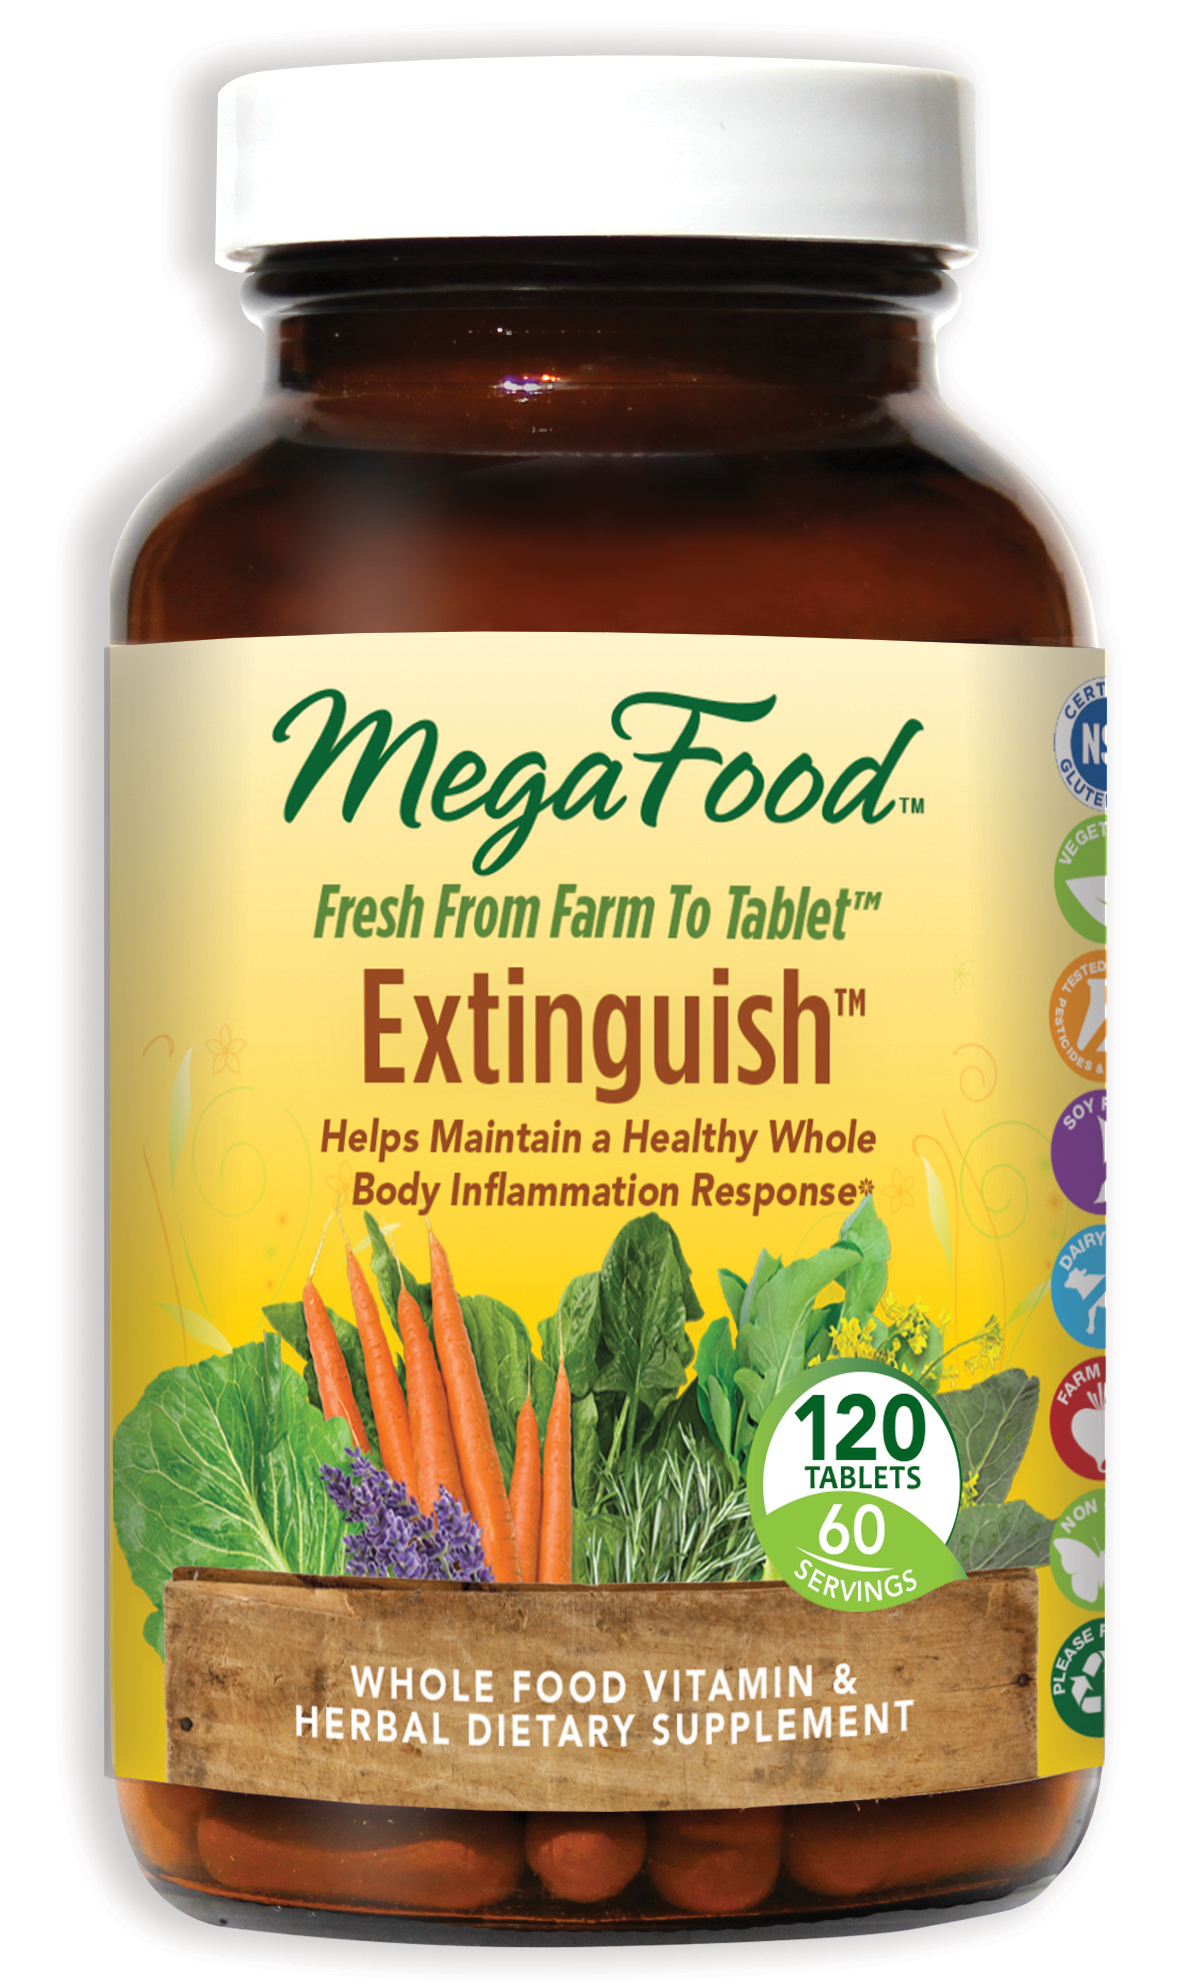 Extinguish by MegaFood